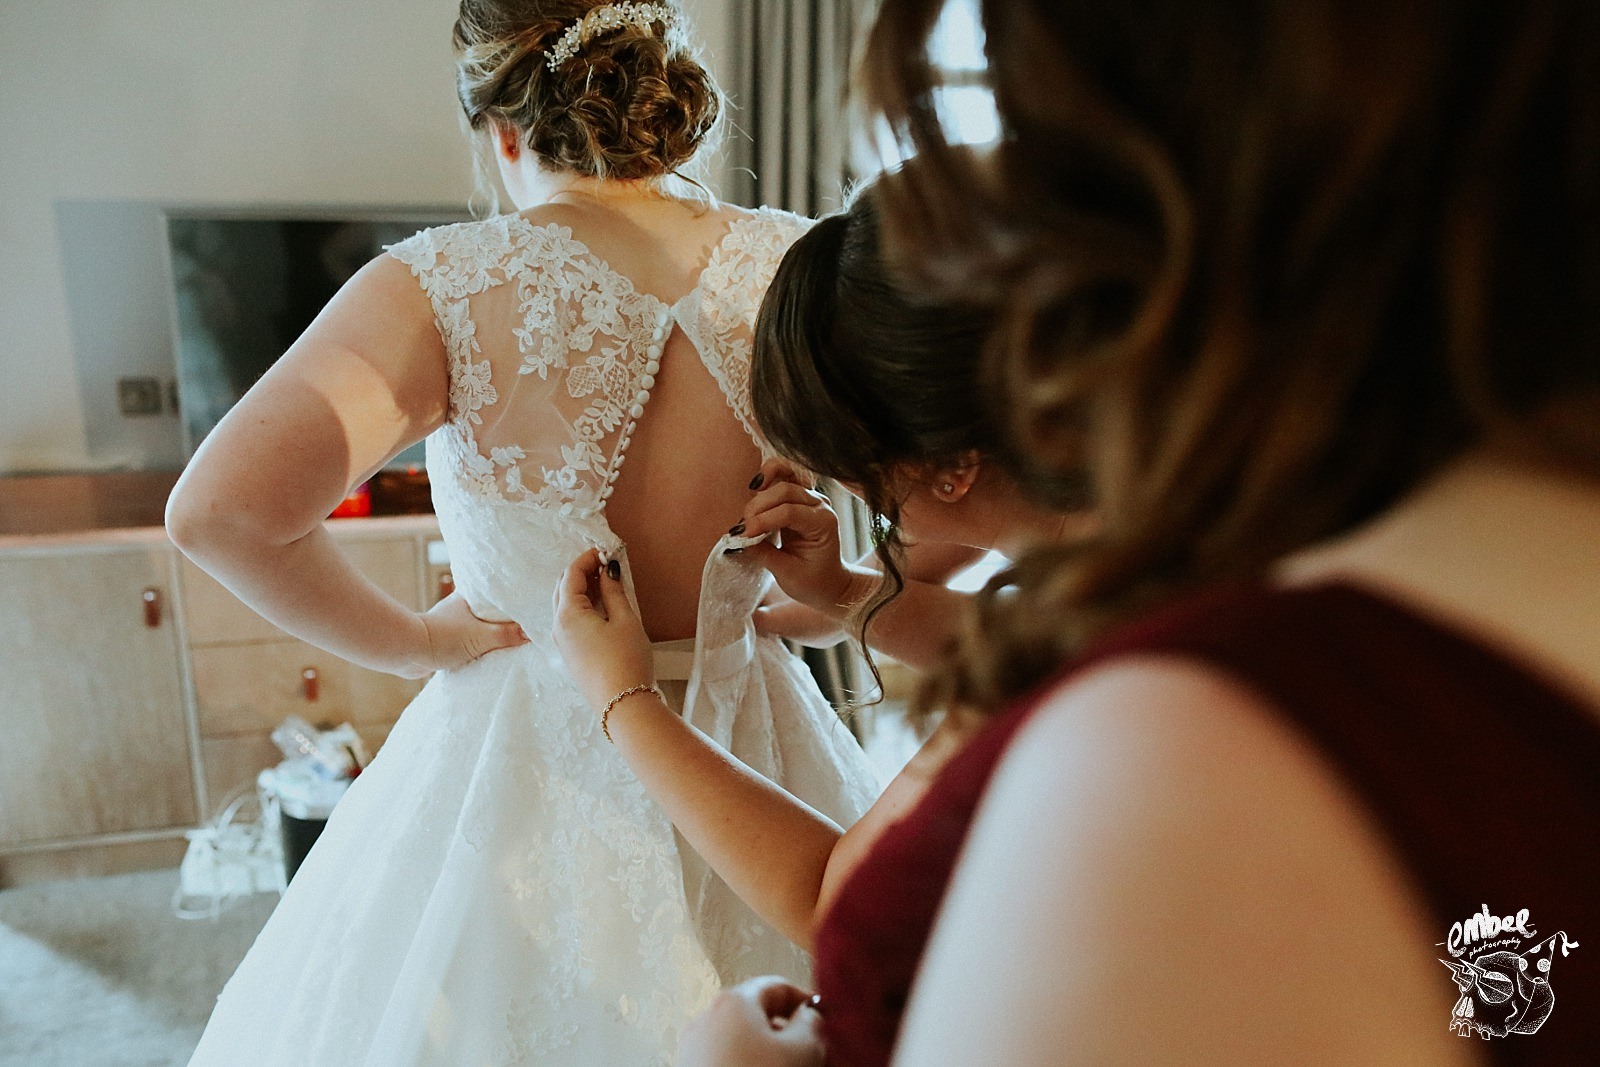 buttoning up the brides dress